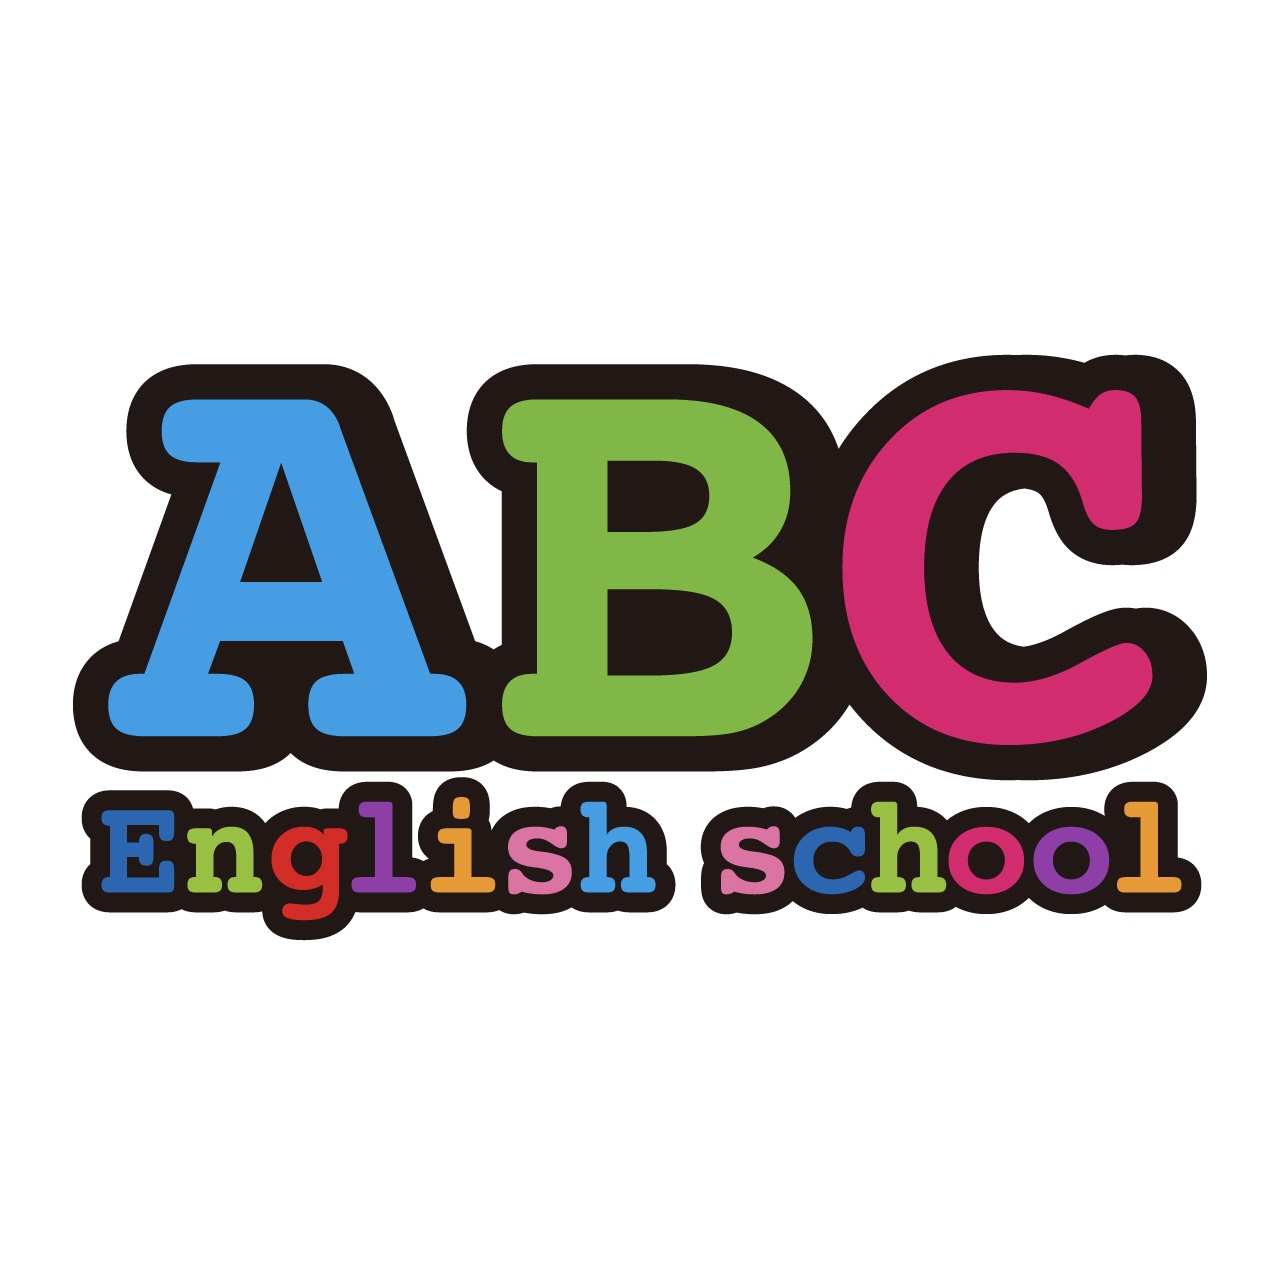 ABC English School